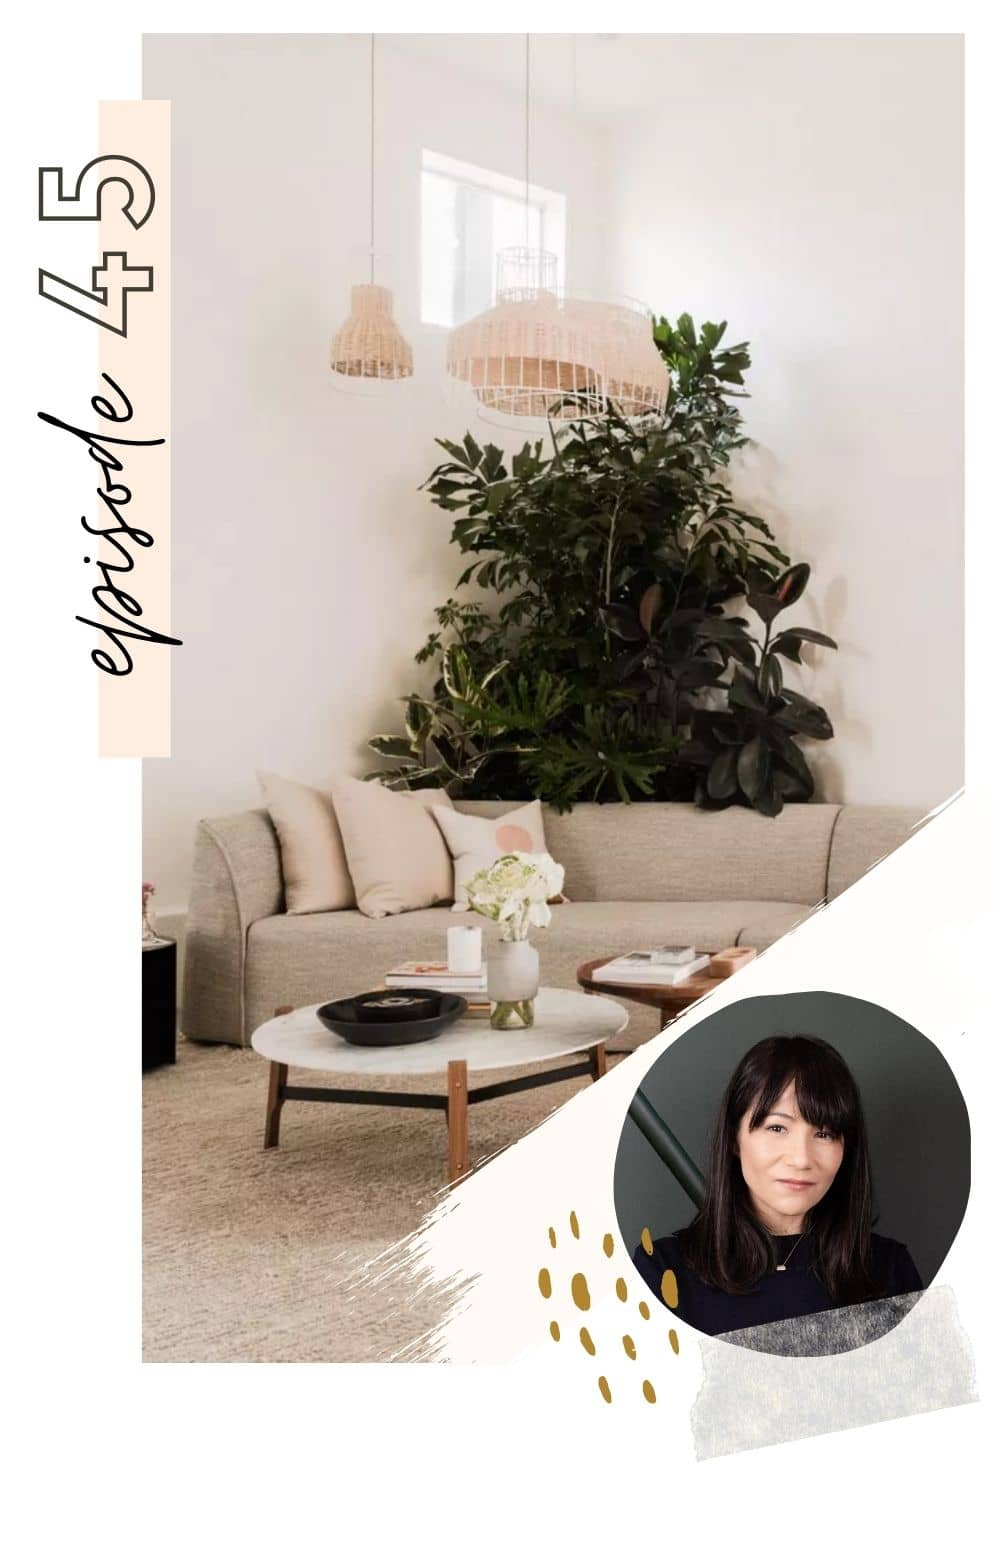 Latest home decor trends on top interior design podcast Make Space by Never Skip Brunch